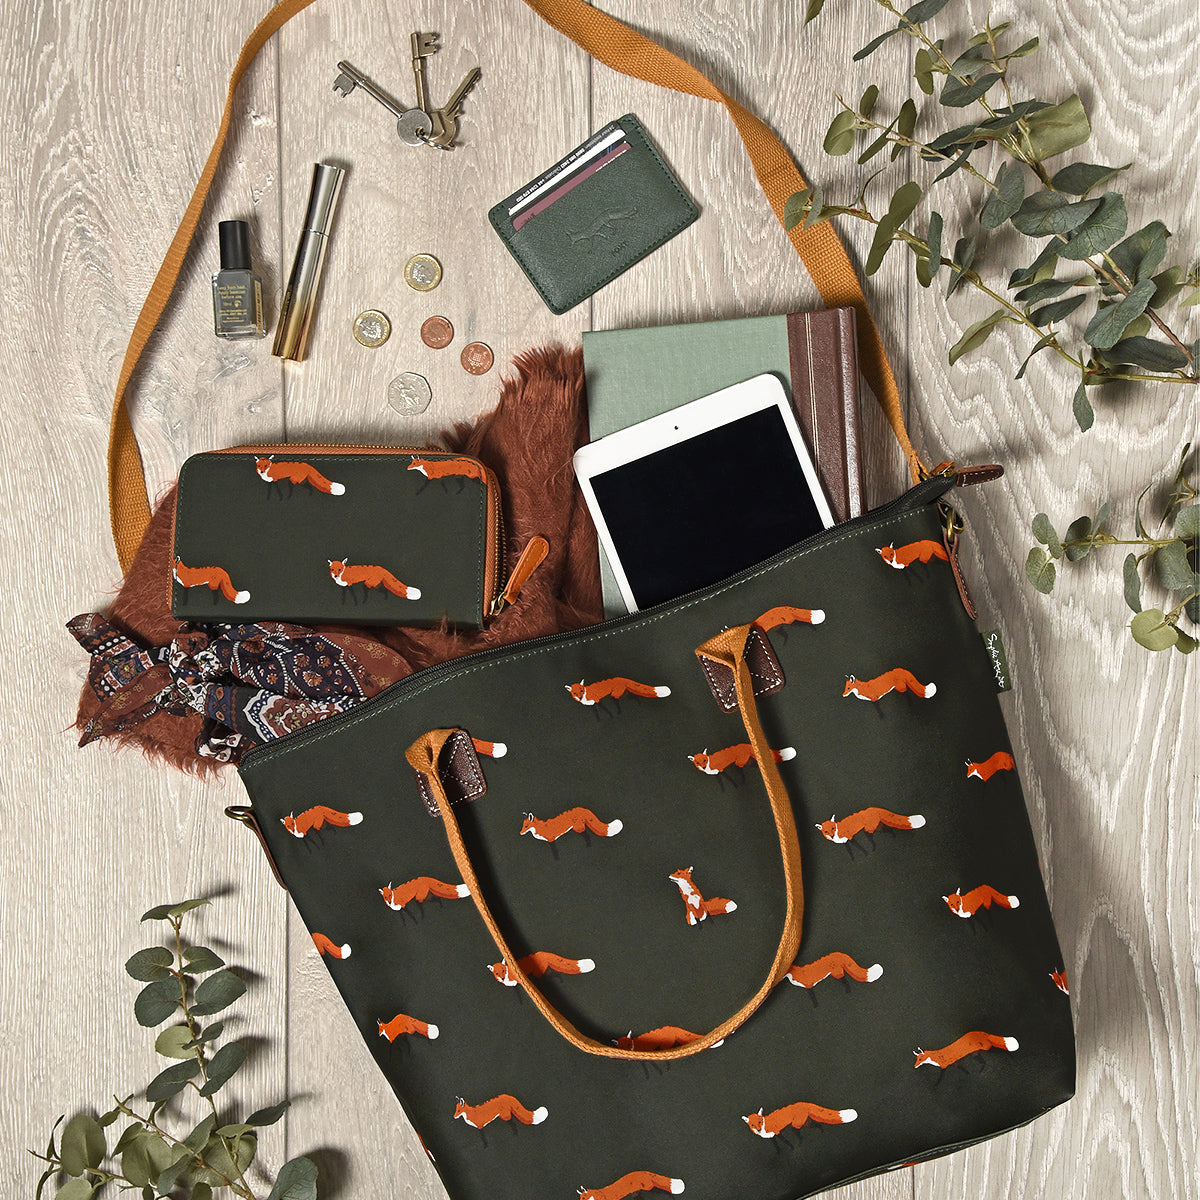 Foxes Oilcloth Zipped Wallet Purse